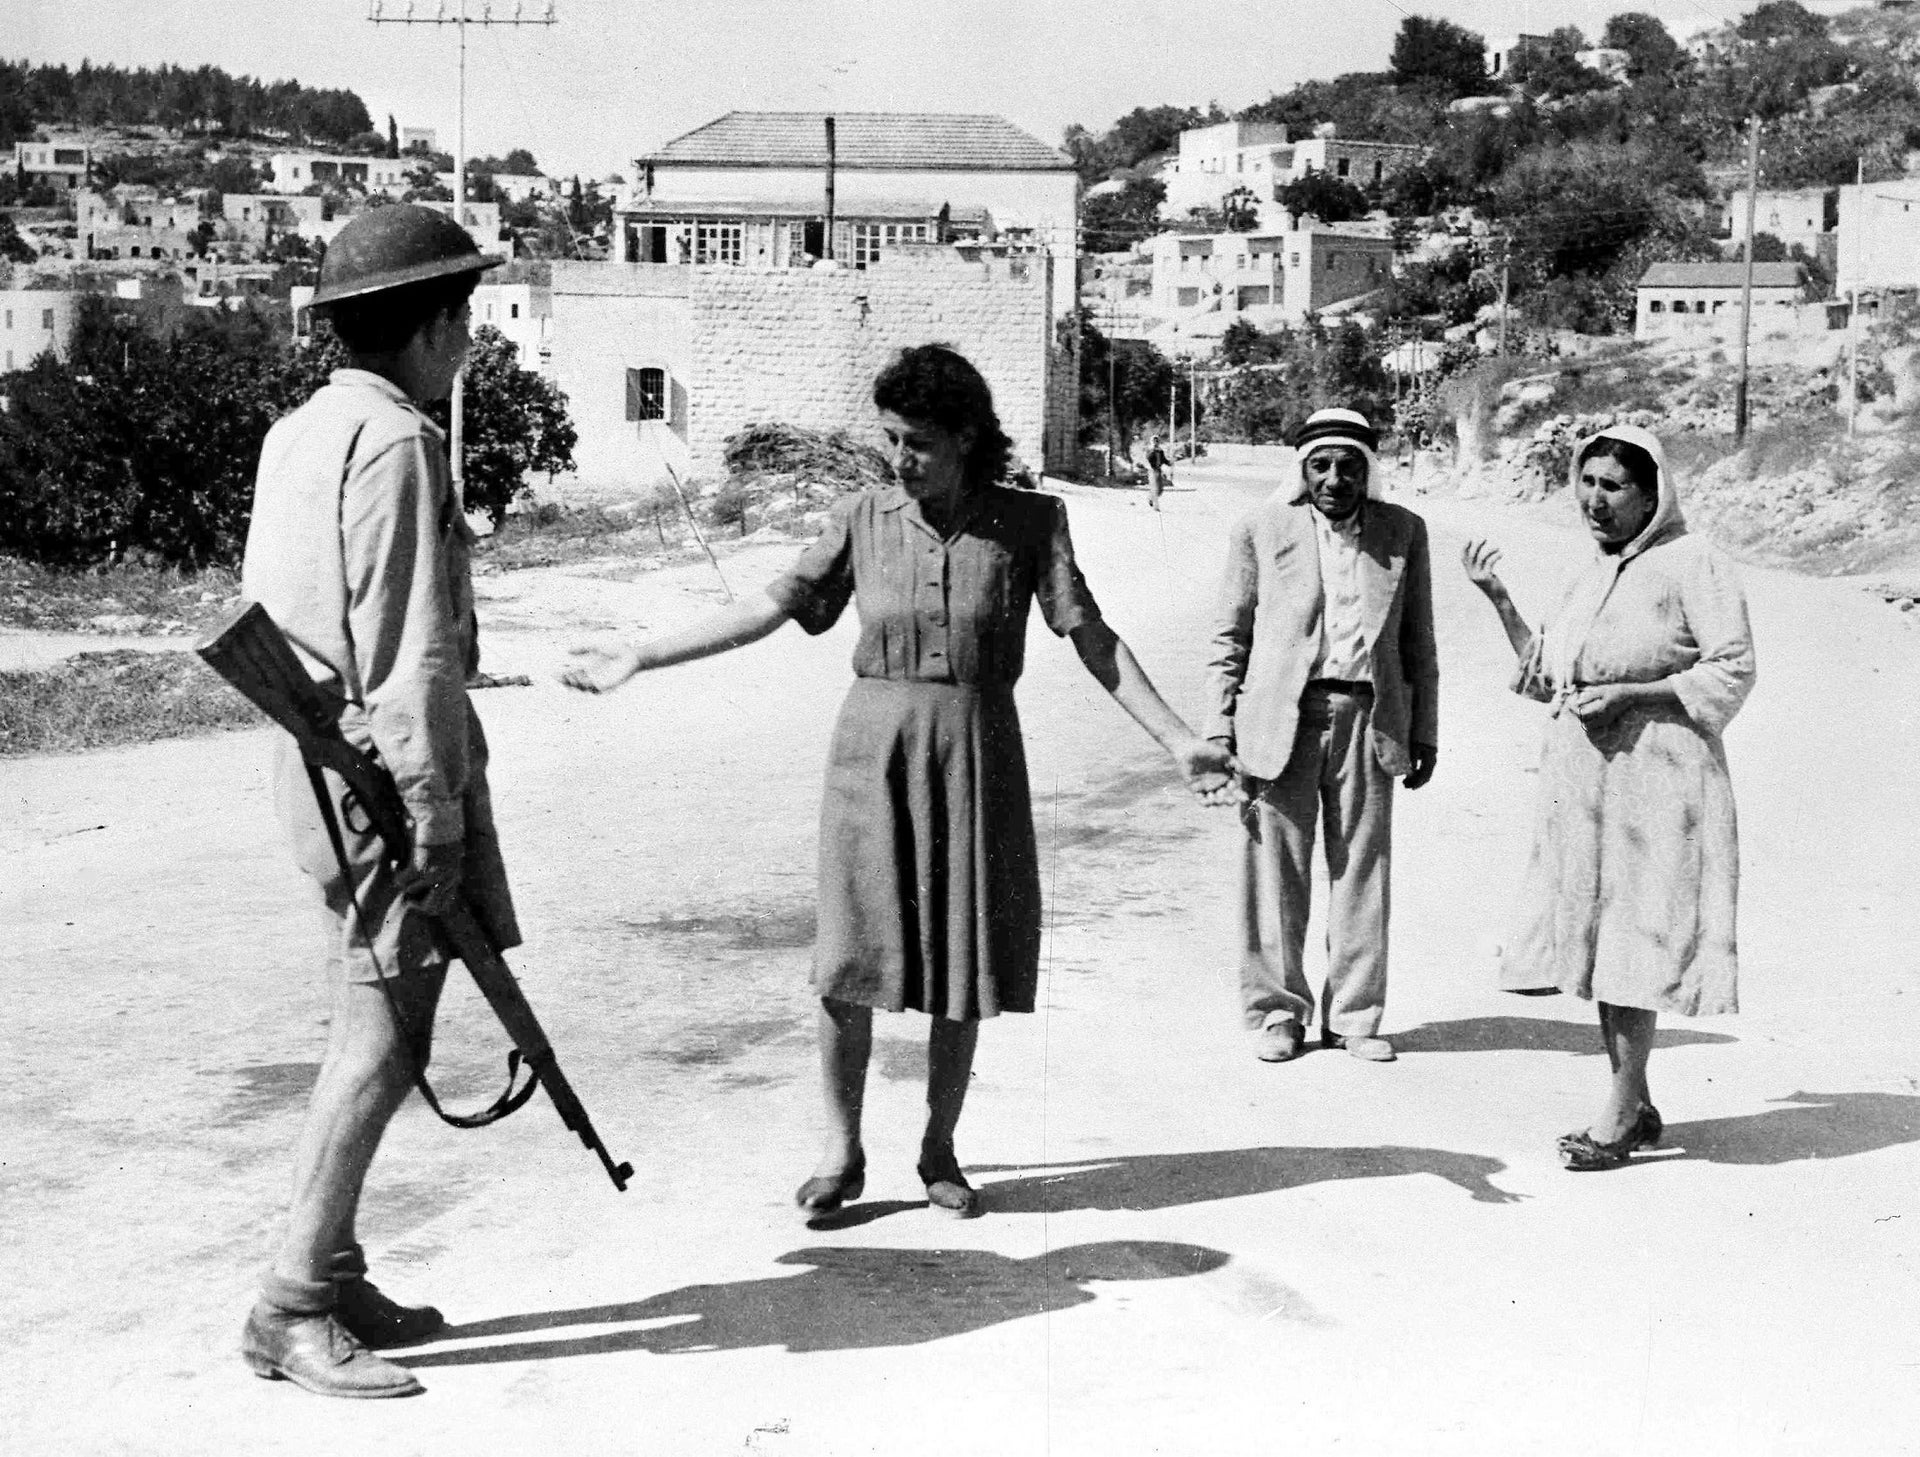 An Israeli soldier stopping some Arabs in a street in Nazareth, July 1948, as they are traveling after the allotted curfew time.